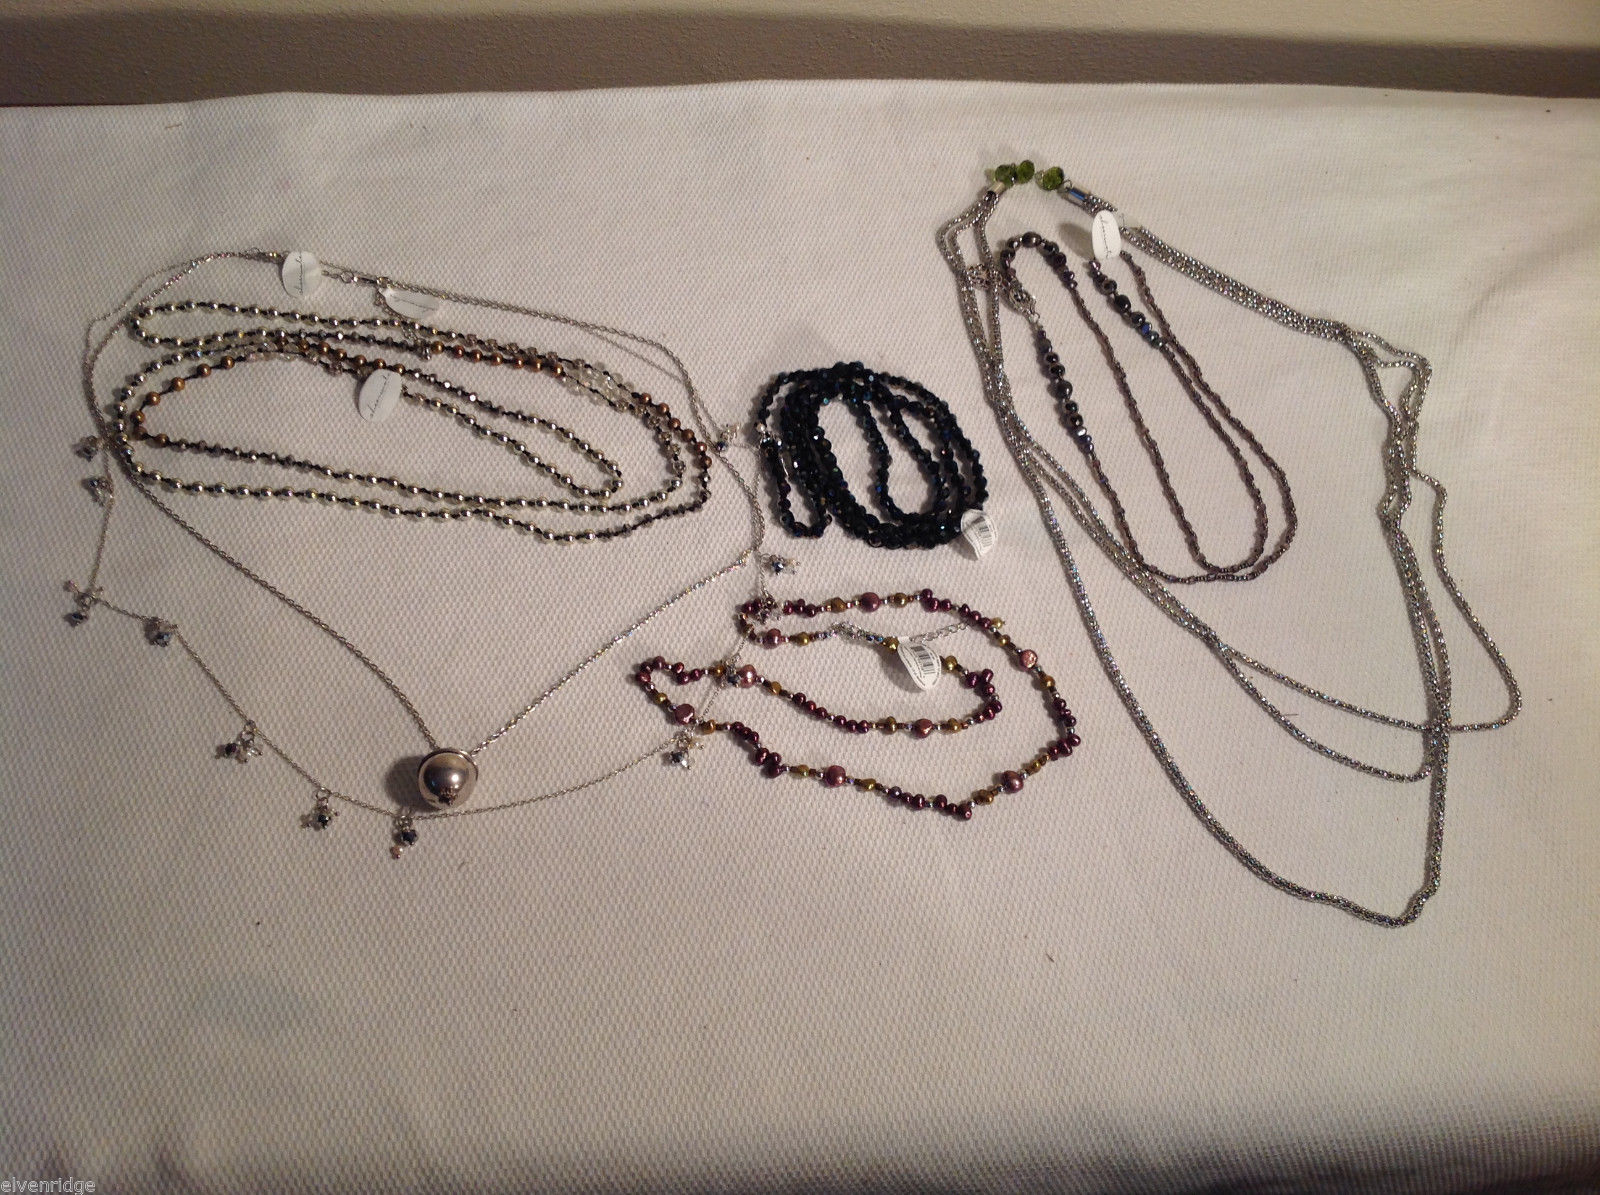 Lot of 7 Necklaces, beaded, dark, light, pendant, silver-tone, pearl Sheerwater